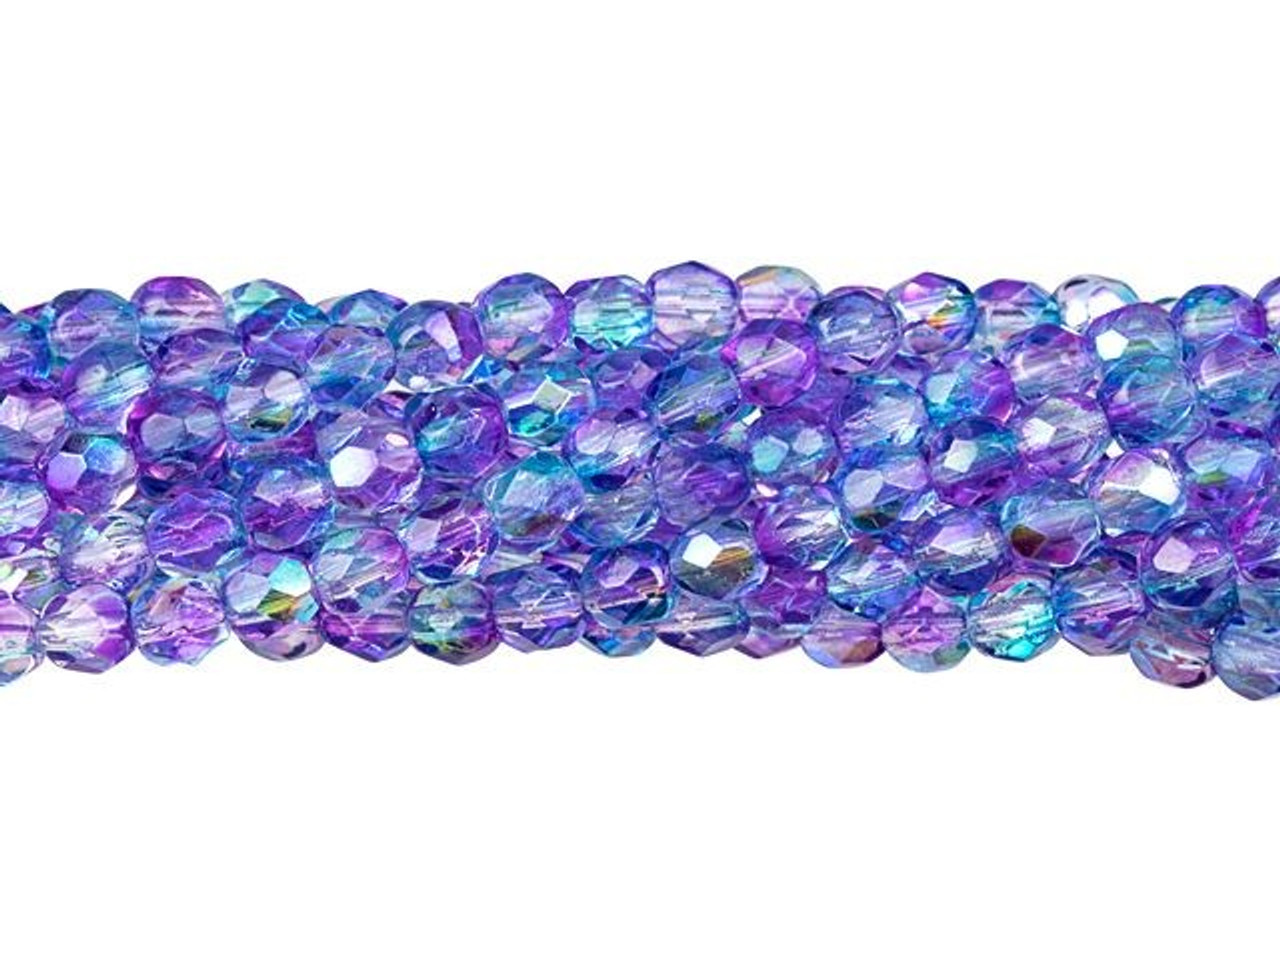 50 4mm Round Faceted Fire Polish Czech Glass Beads Dark Aqua Blue Vitral